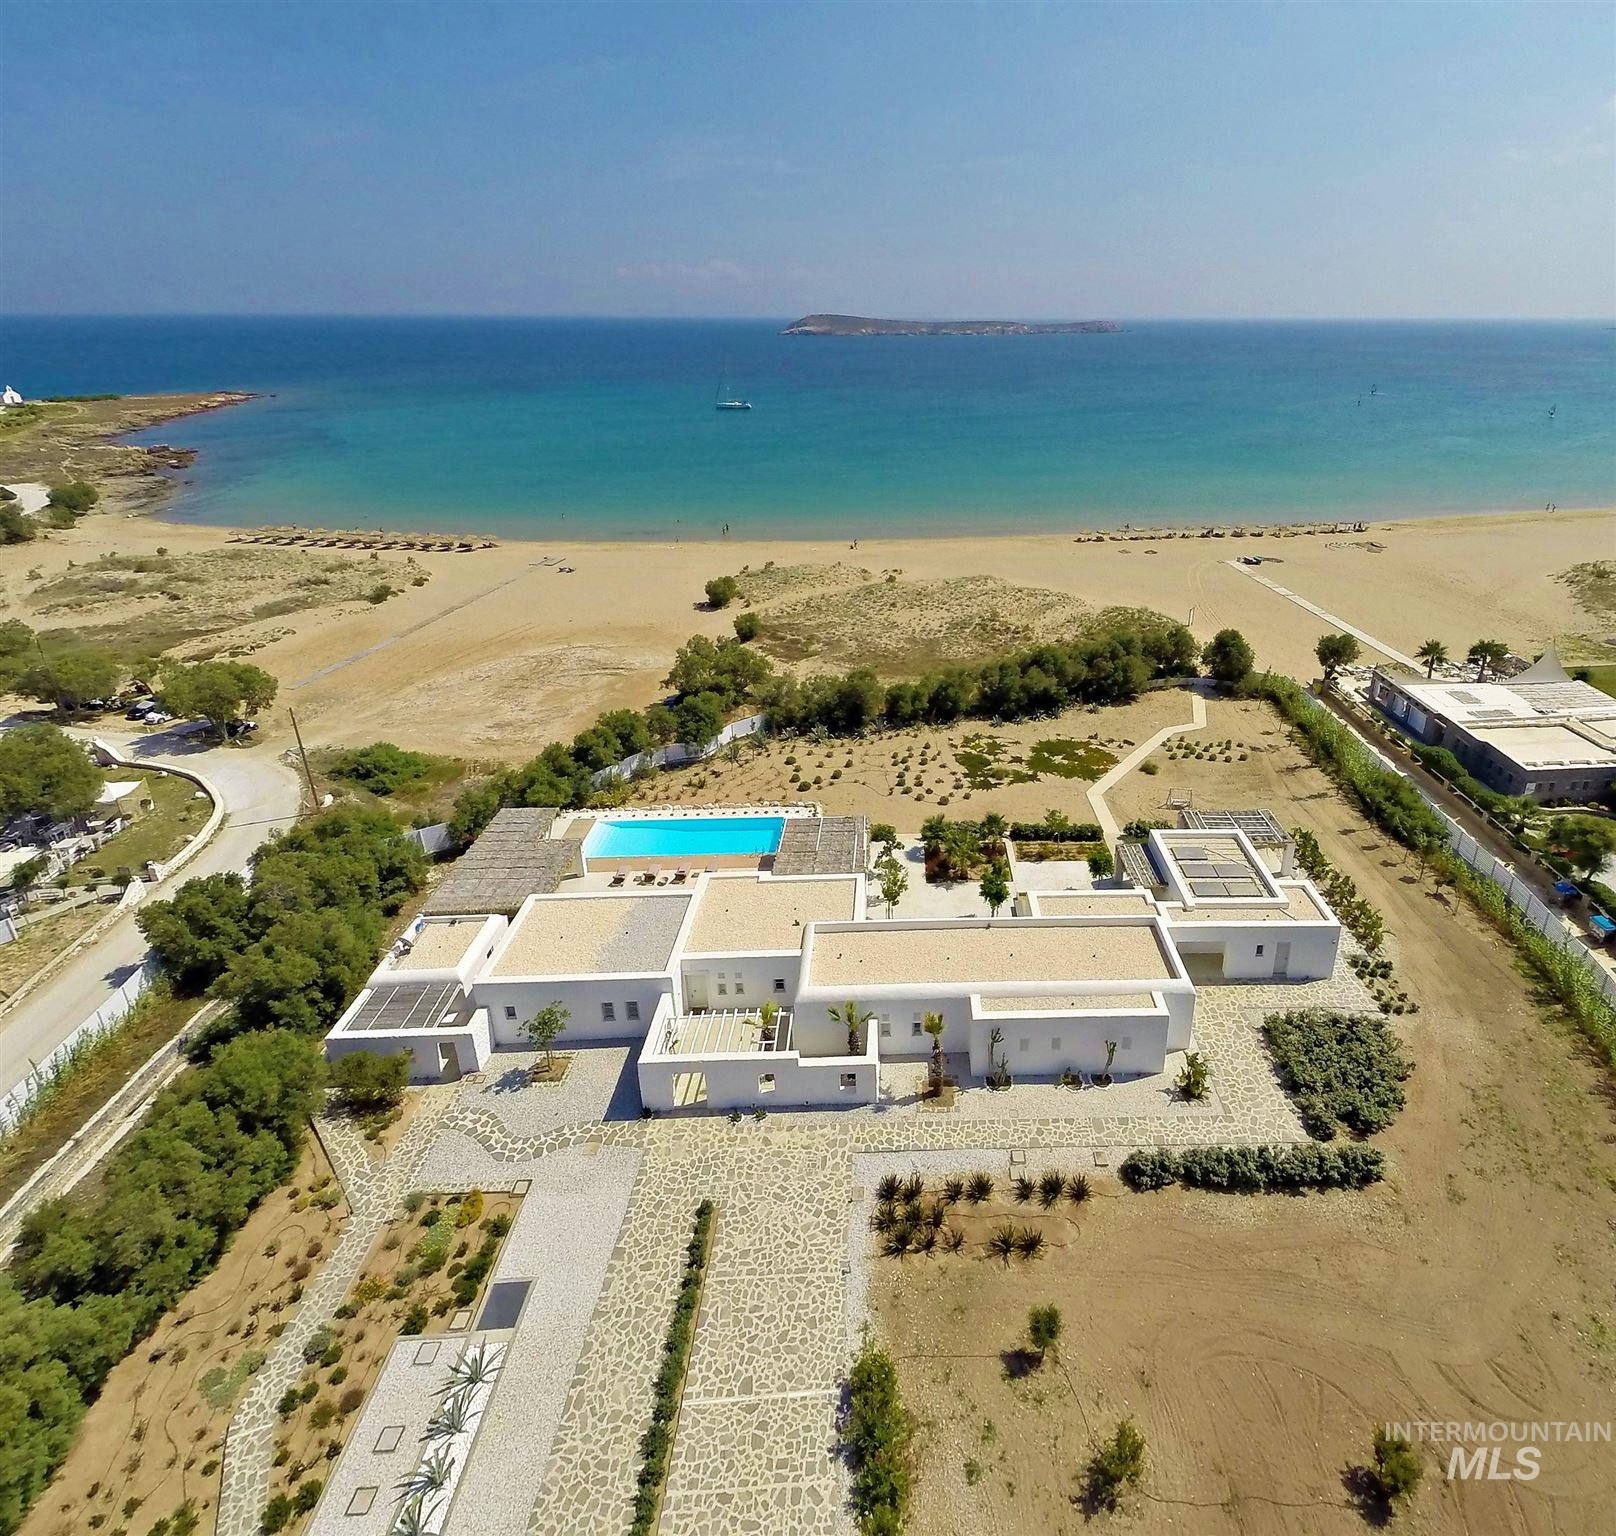 Golden Beach Paros Greece, Gold Beach, OS 00000, 4 Bedrooms, 4.5 Bathrooms, Rental For Rent, Price $0, 98782143